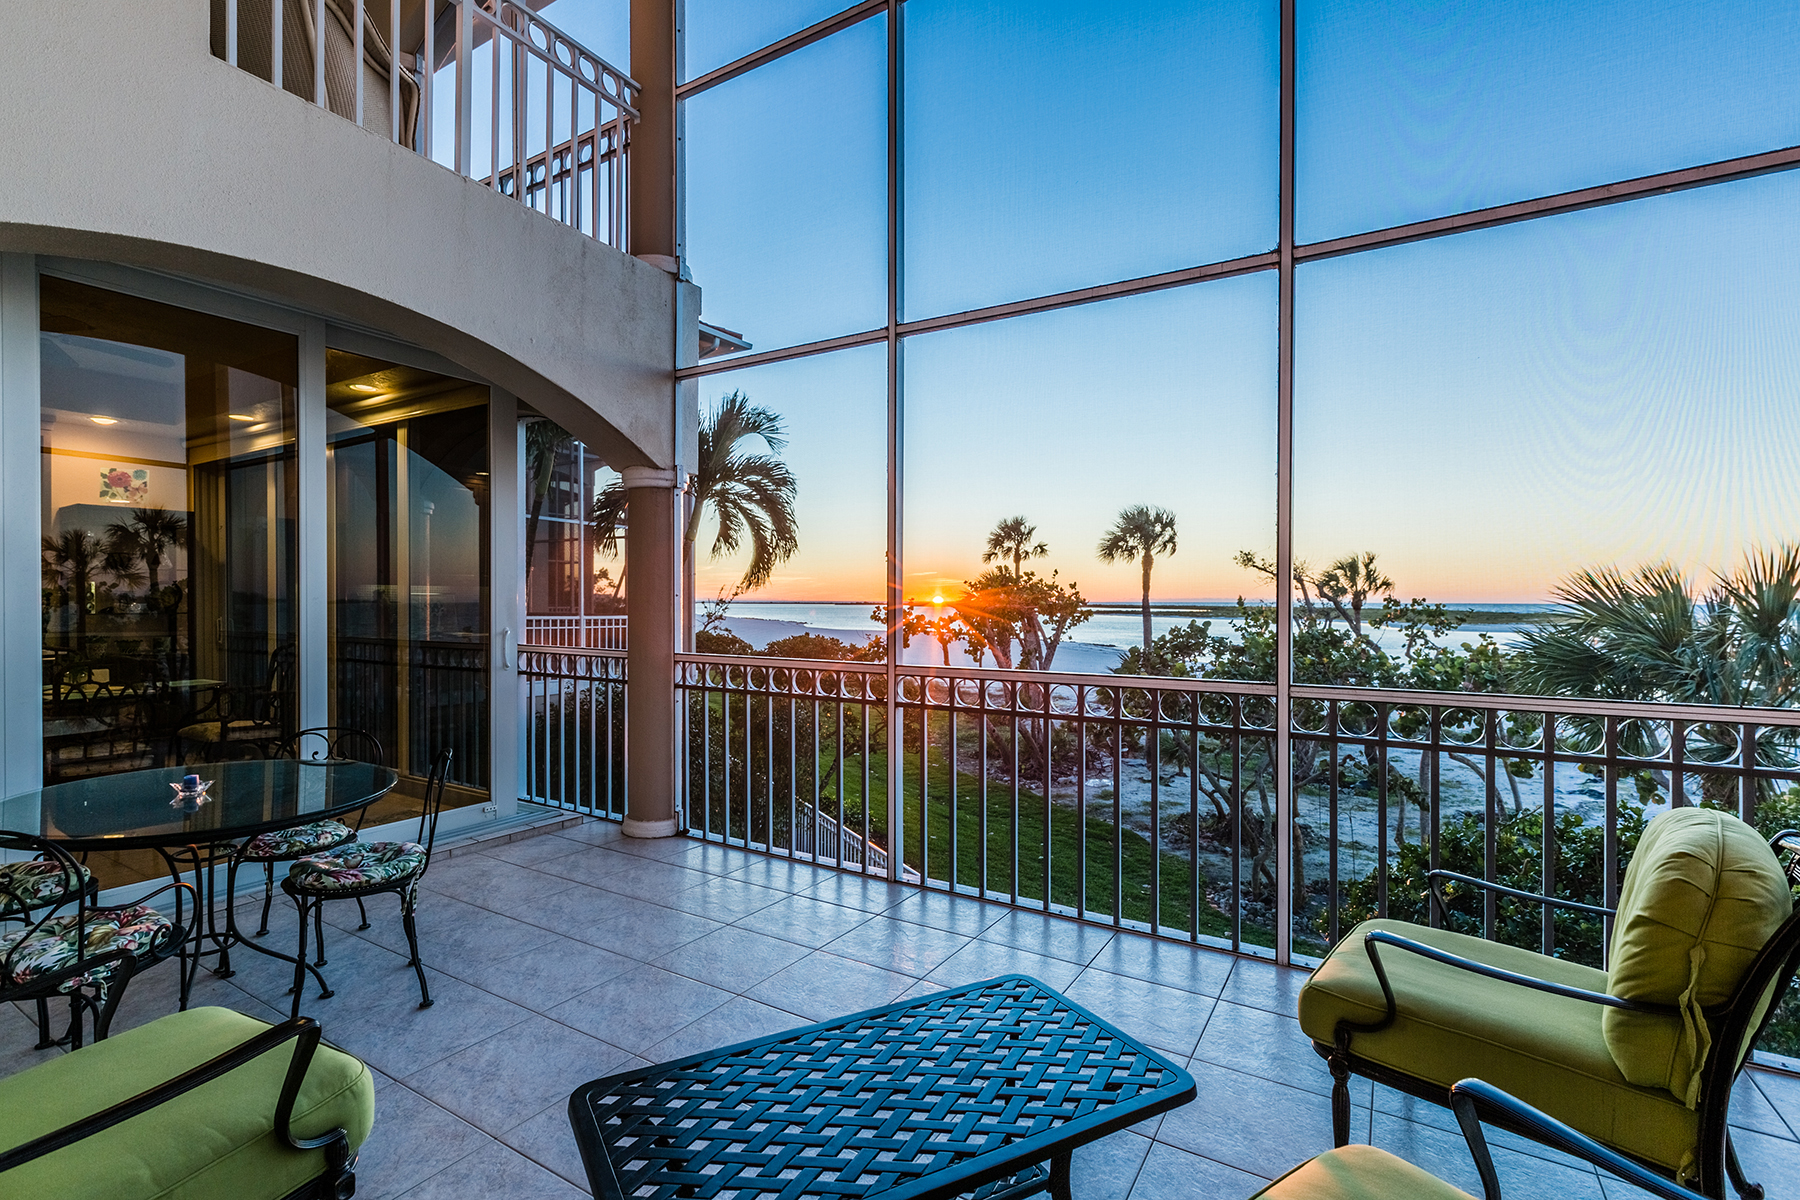 Condominium for Sale at HIDEAWAY BEACH 1000 Royal Marco Way 4, Marco Island, Florida 34145 United States